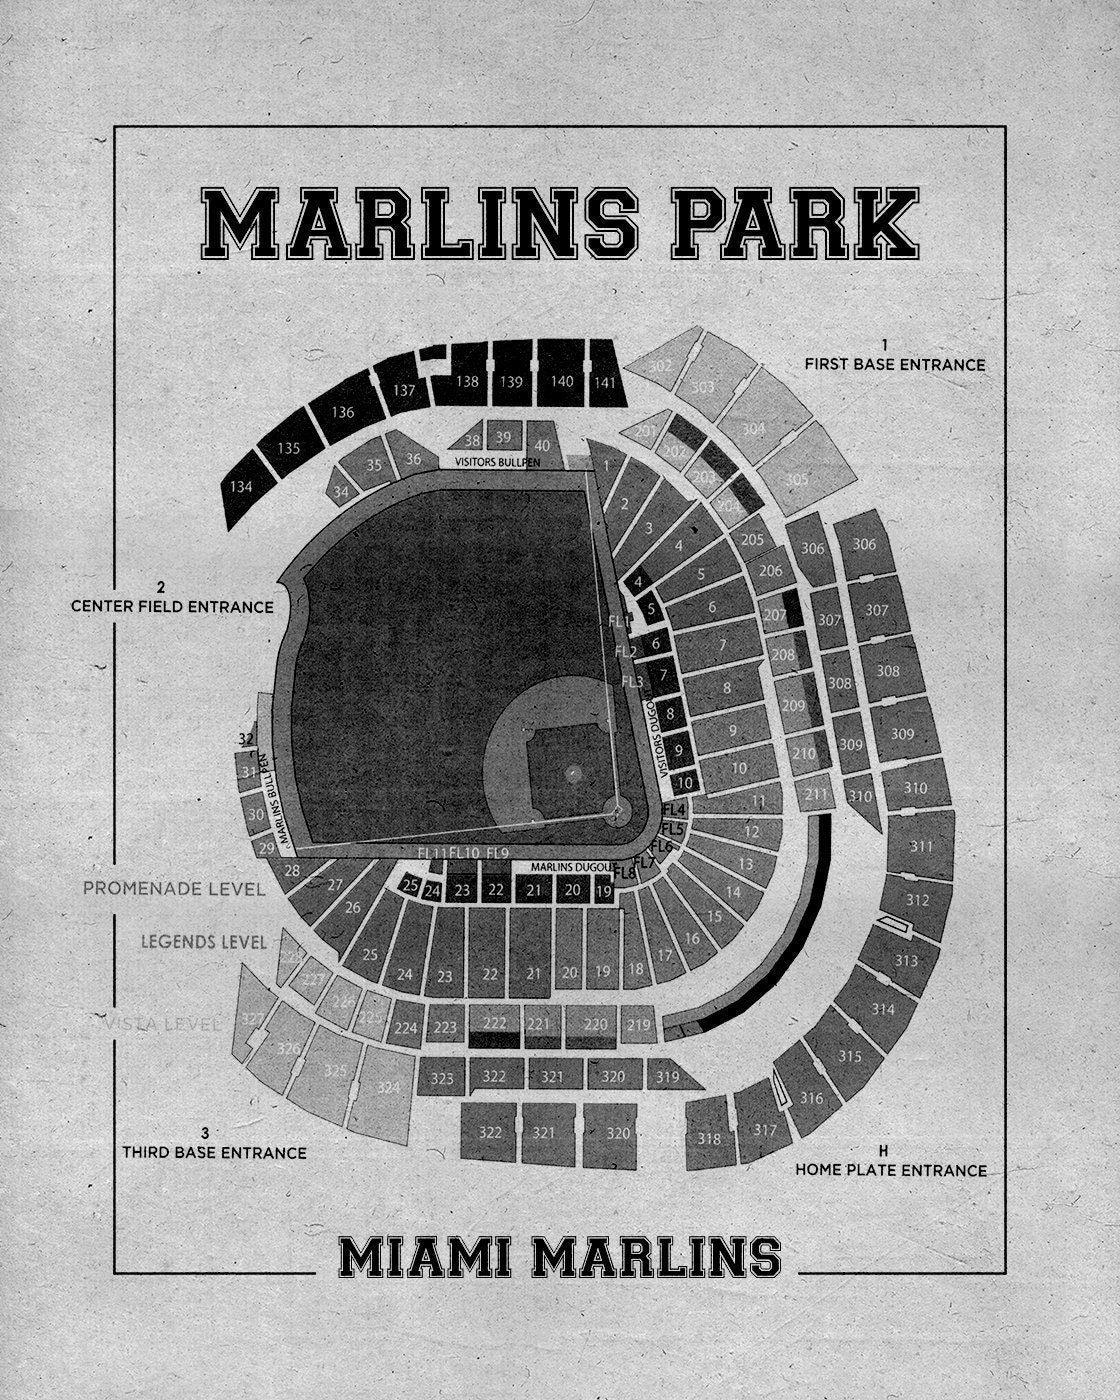 Vintage print of marlins park seating chart miami marlins baseball vintage print of marlins park seating chart miami marlins baseball blueprint on photo paper matte paper or stretched canvas malvernweather Images